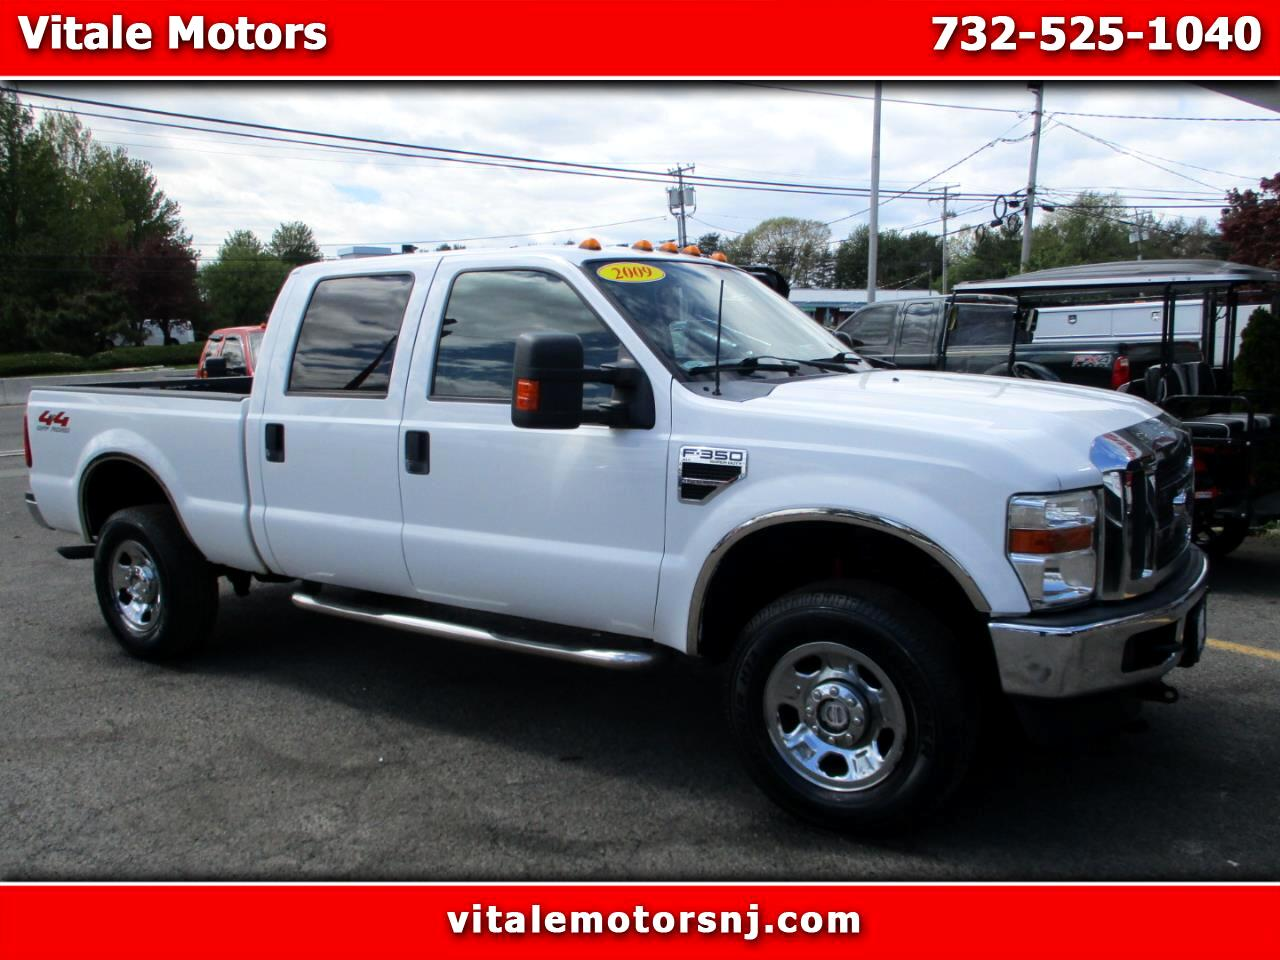 2009 Ford F-350 SD CREW CAB 4X4 6' BED